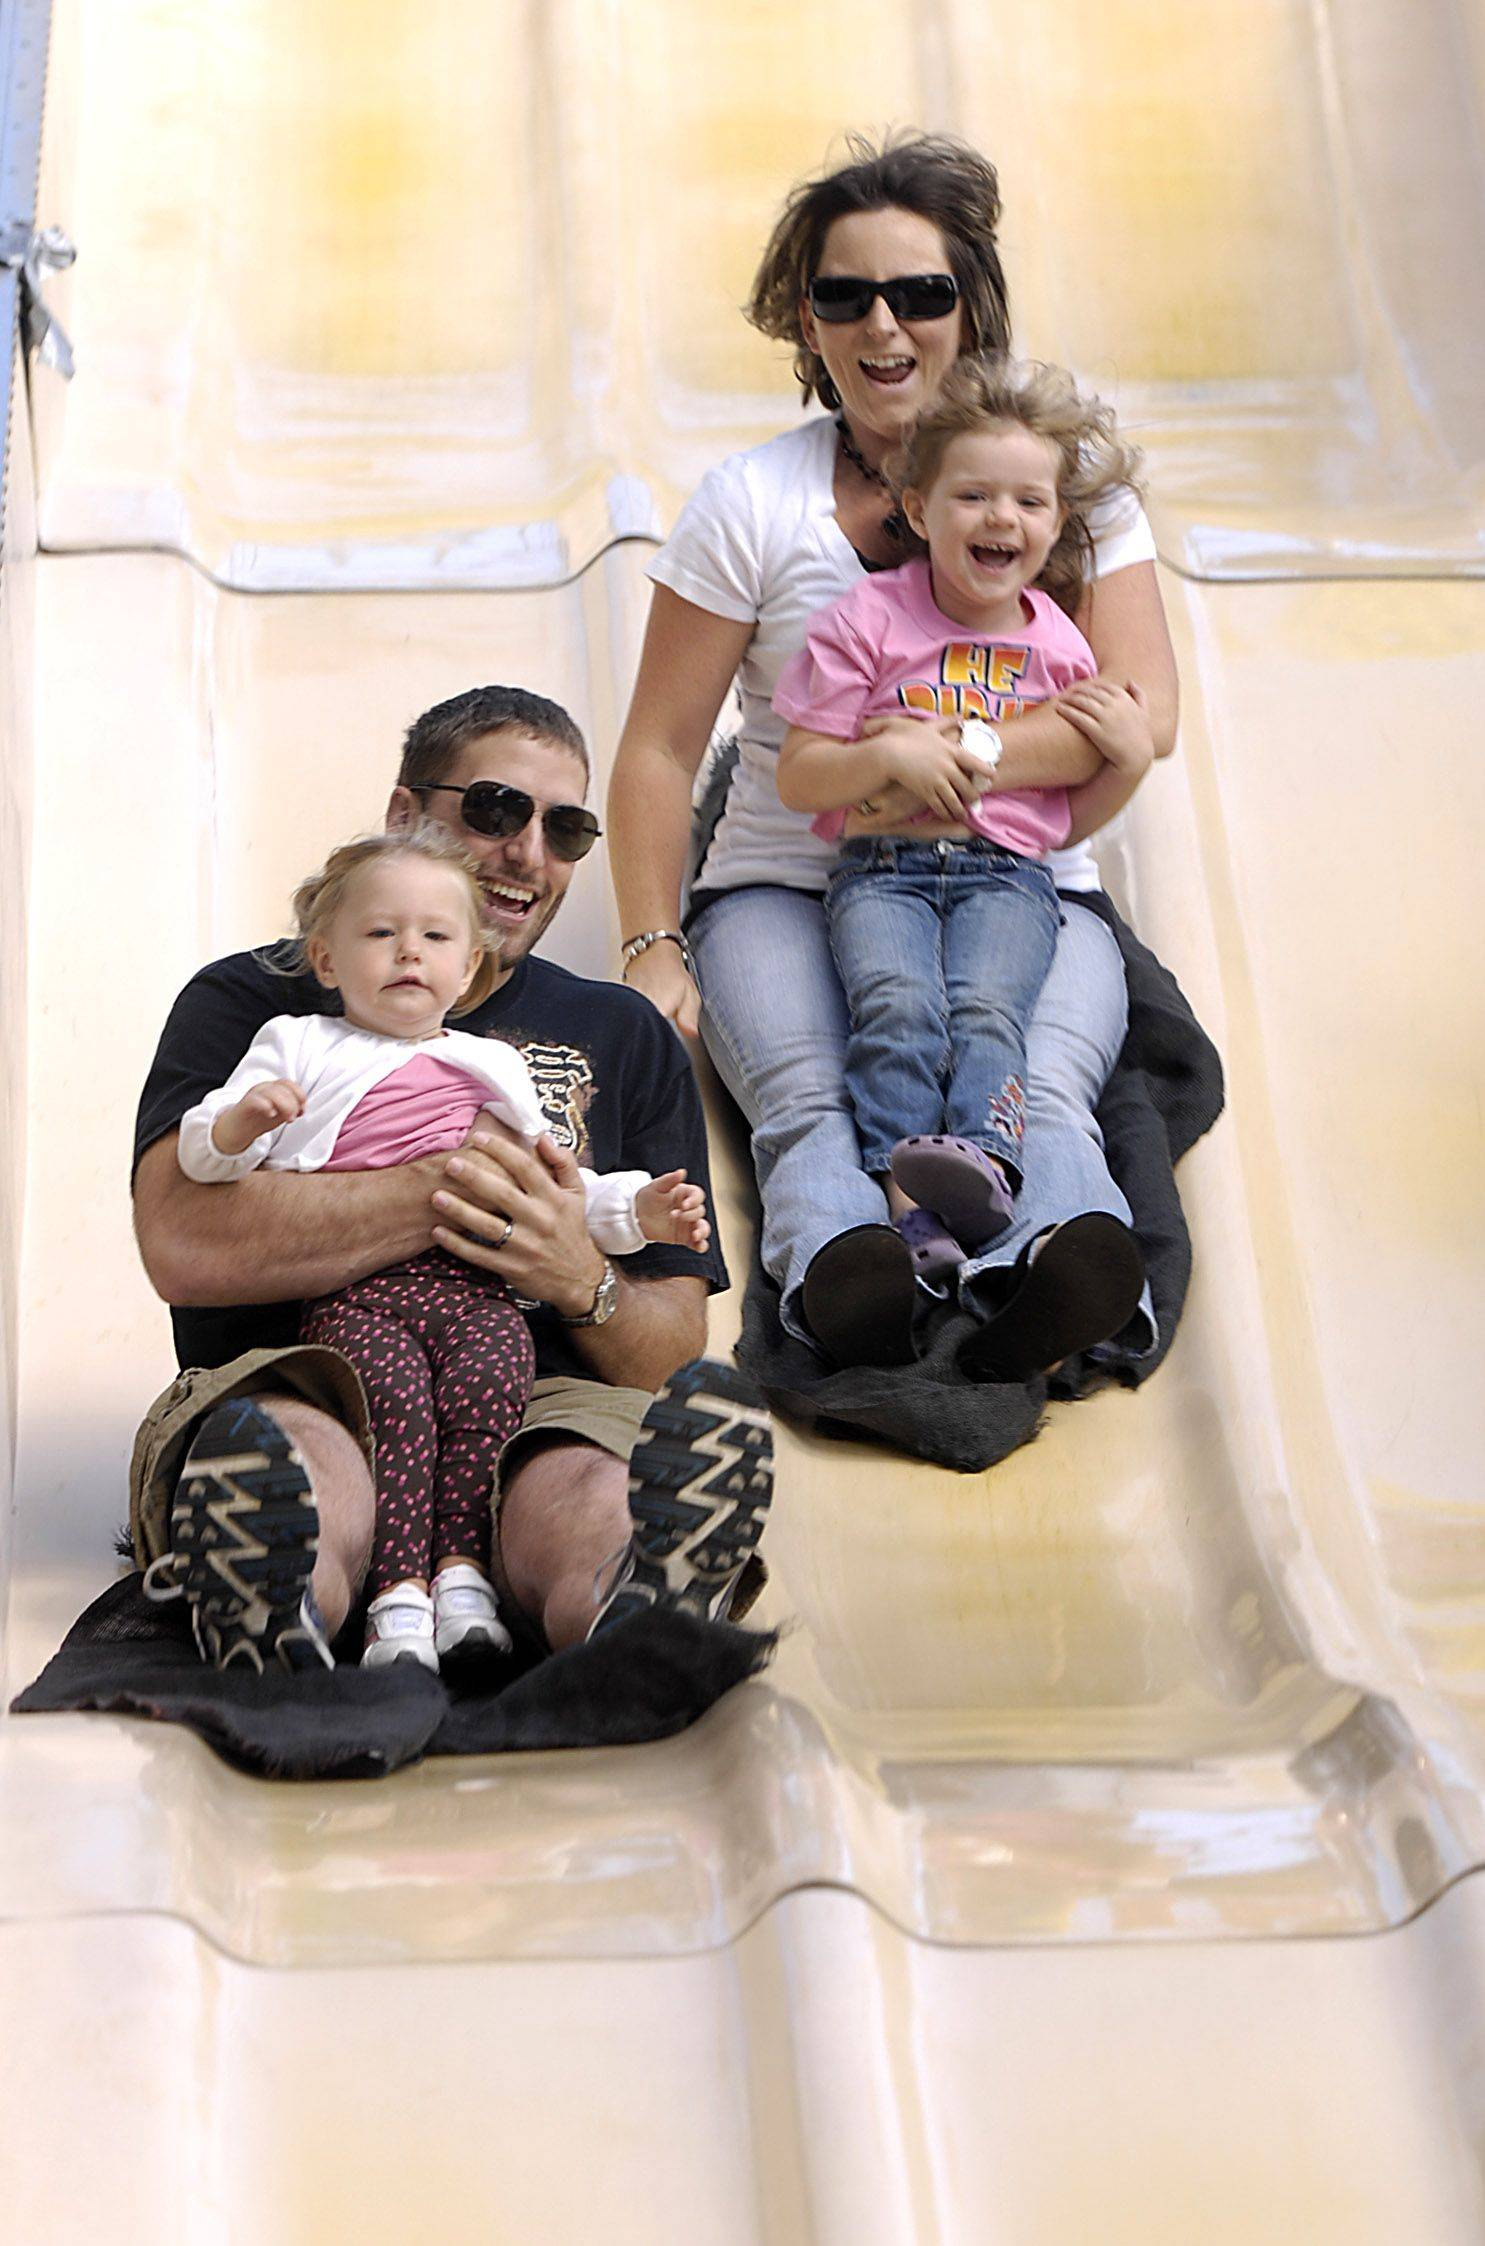 Scott Hecht and daughter Adalyn, 2 along with his wife Meagan Hecht and their niece Ryann Furlow, 4 of Naperville enjoy a trip down the Fun Slide at the Last Fling carnival in Naperville.